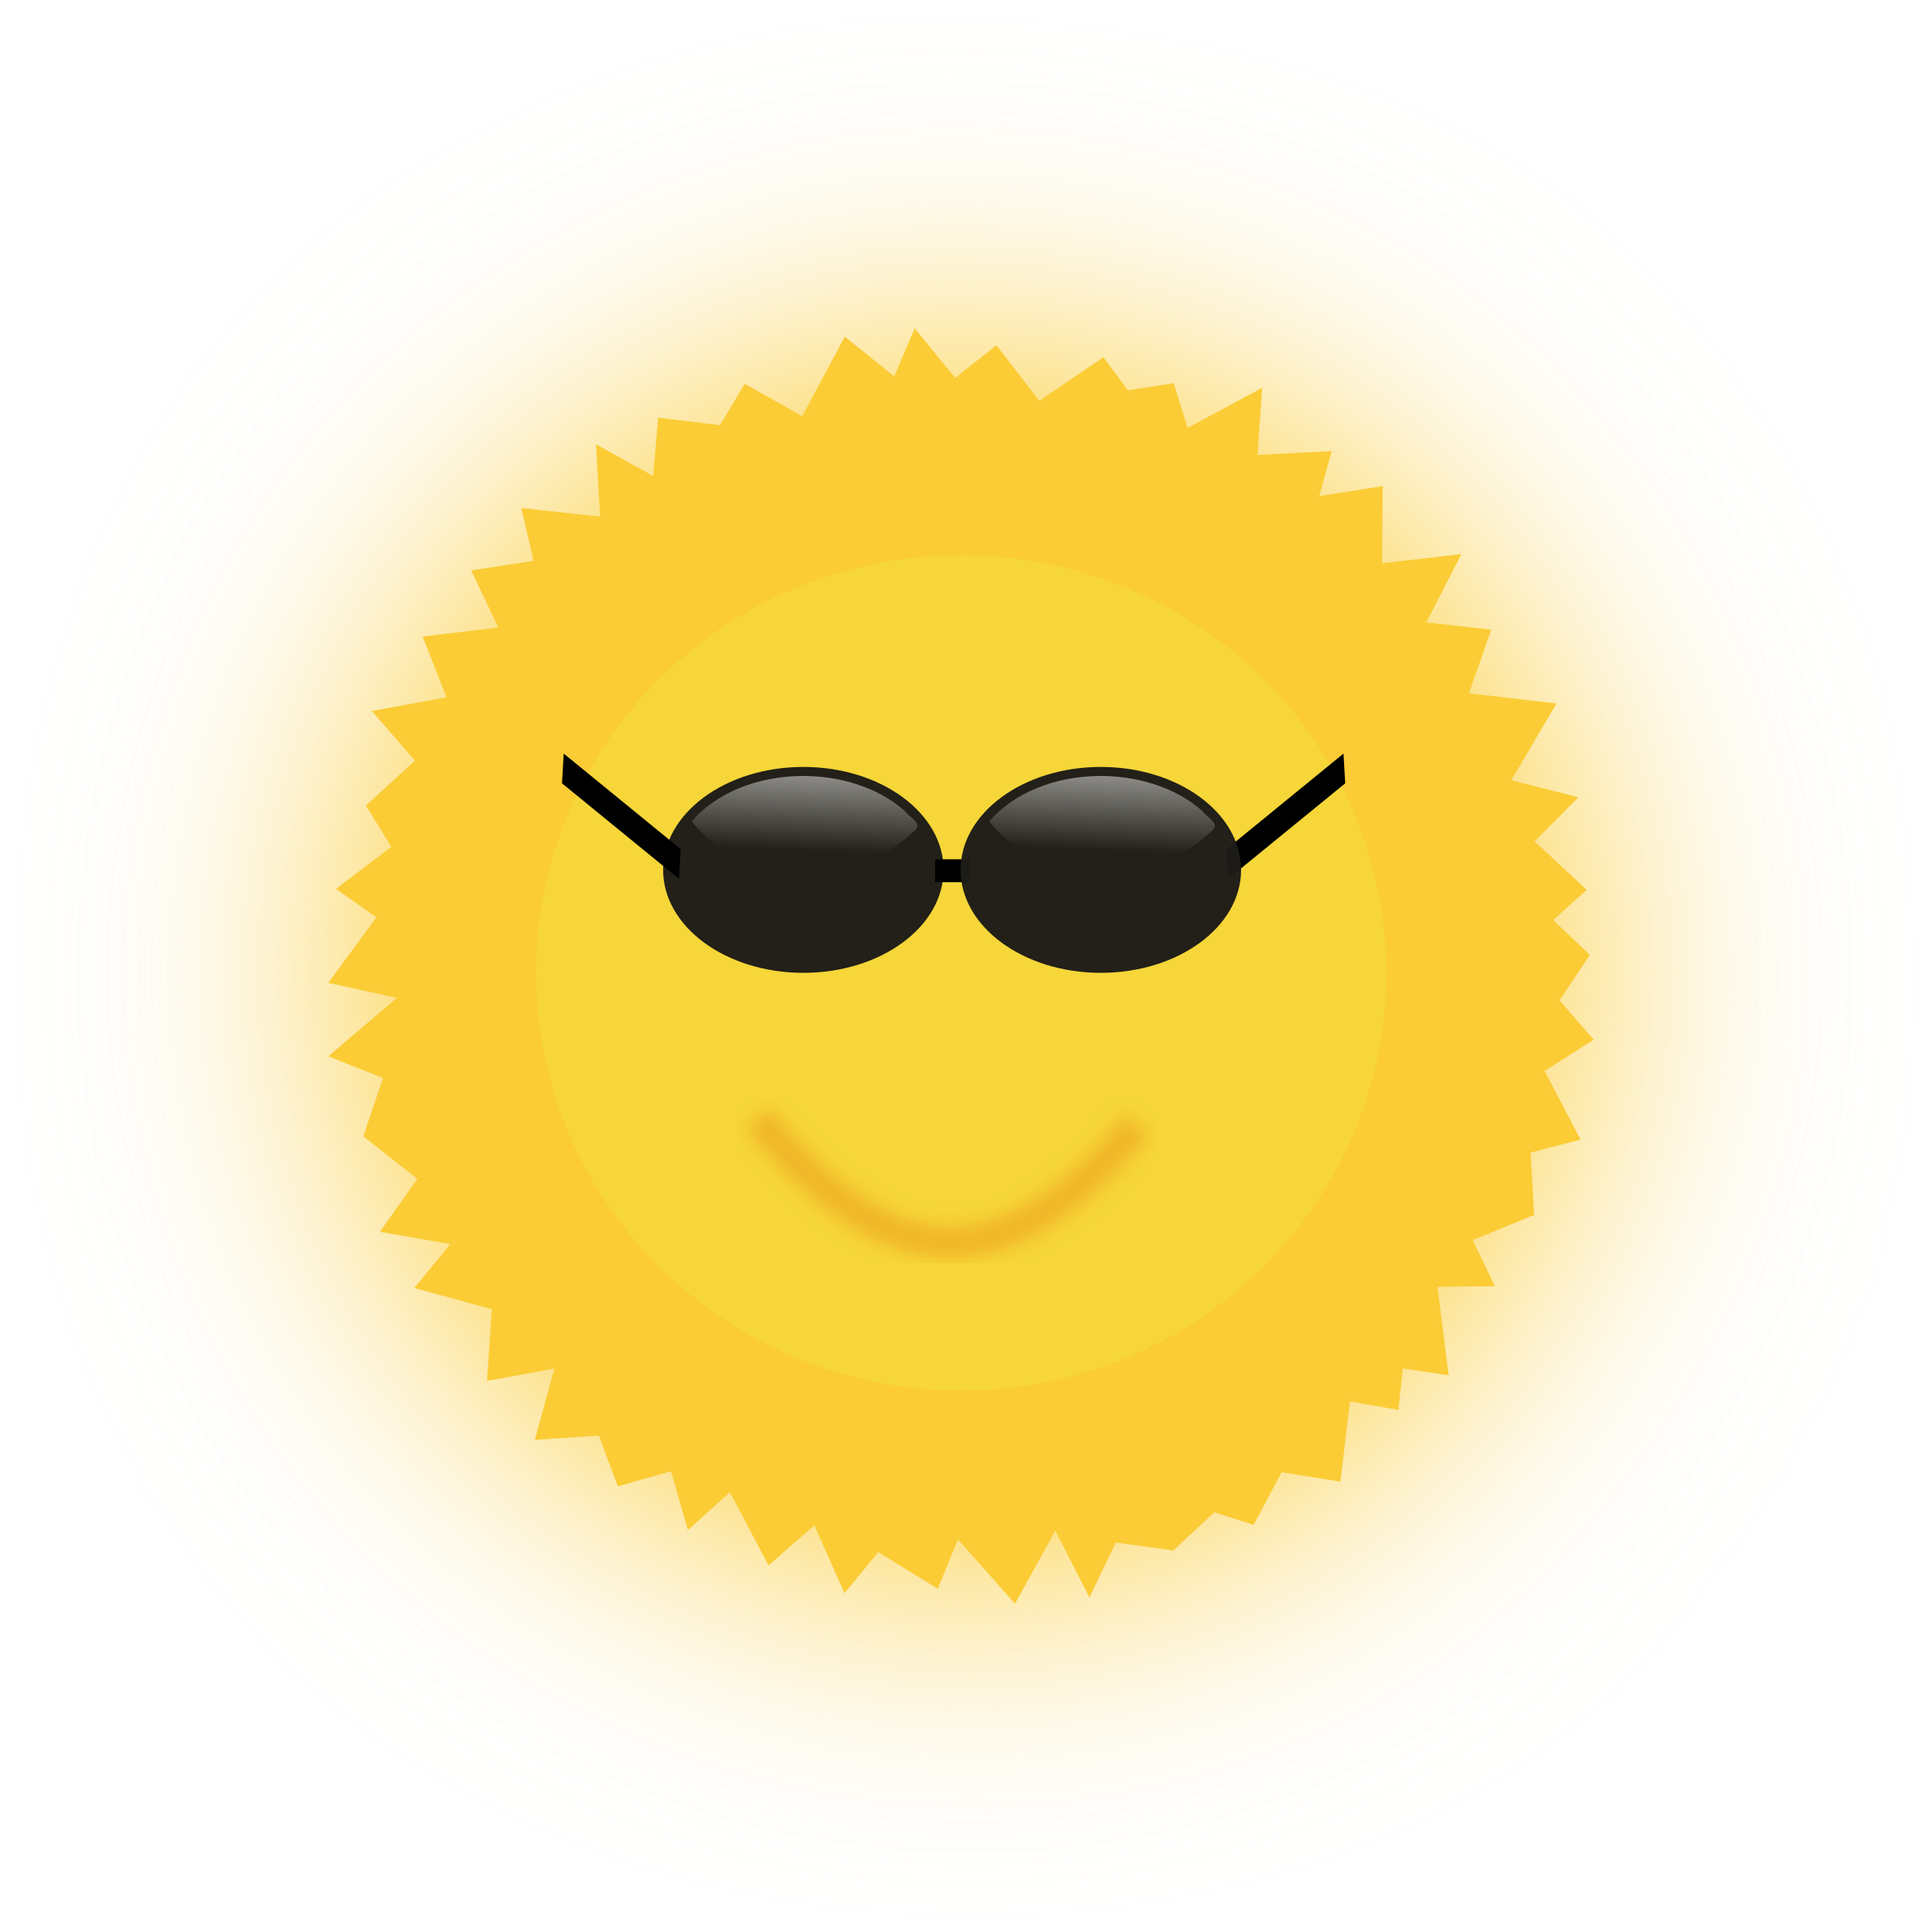 Sun big image png. Number 1 clipart cool